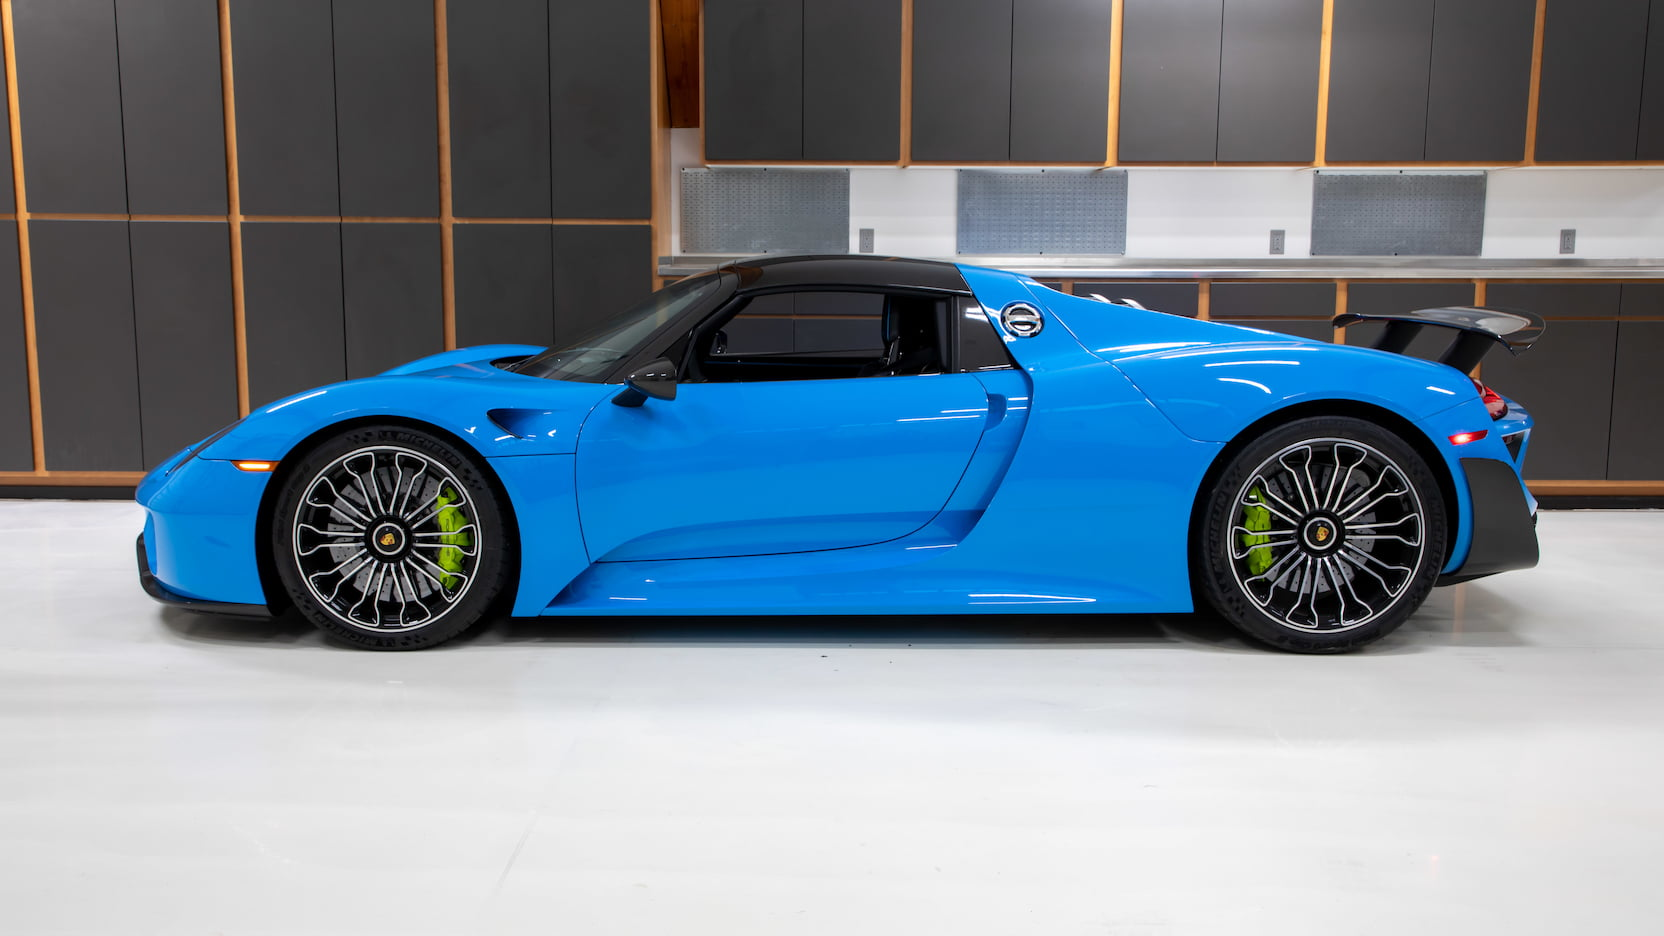 Porsche-918-Spyder-Riviera-Blue-auction-2